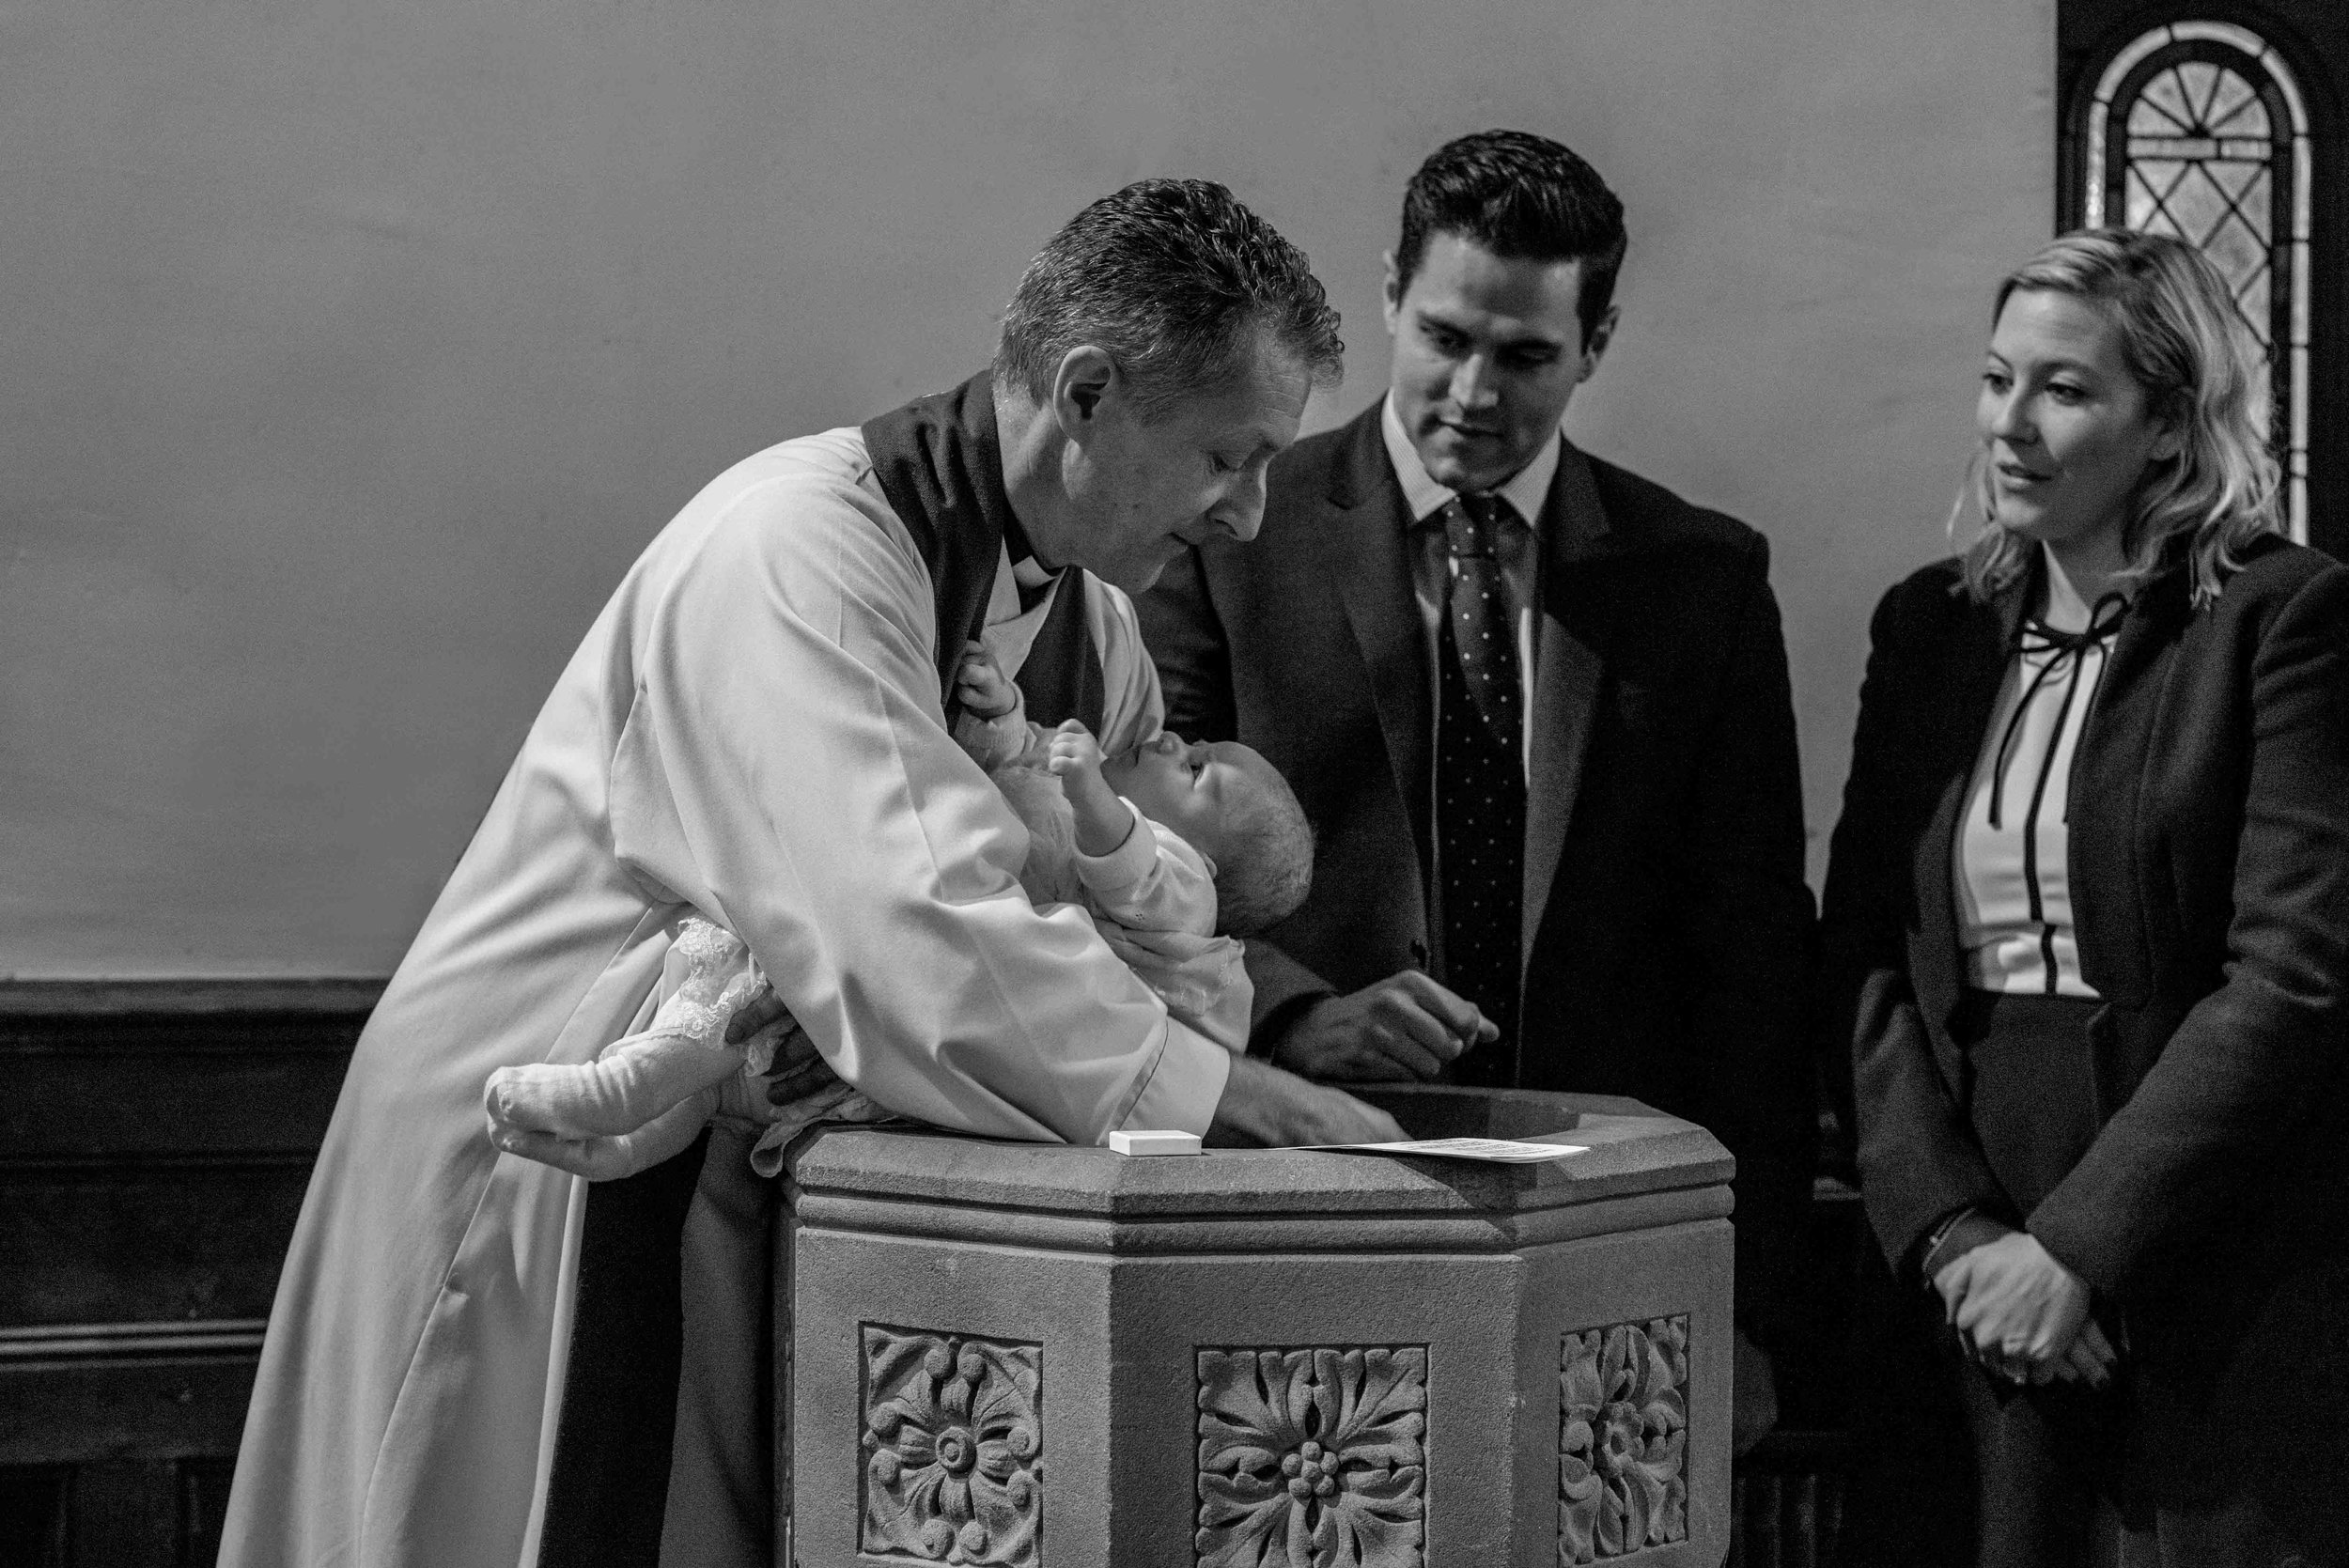 The vicar Christens baby Harry in the front at the rear of the church.